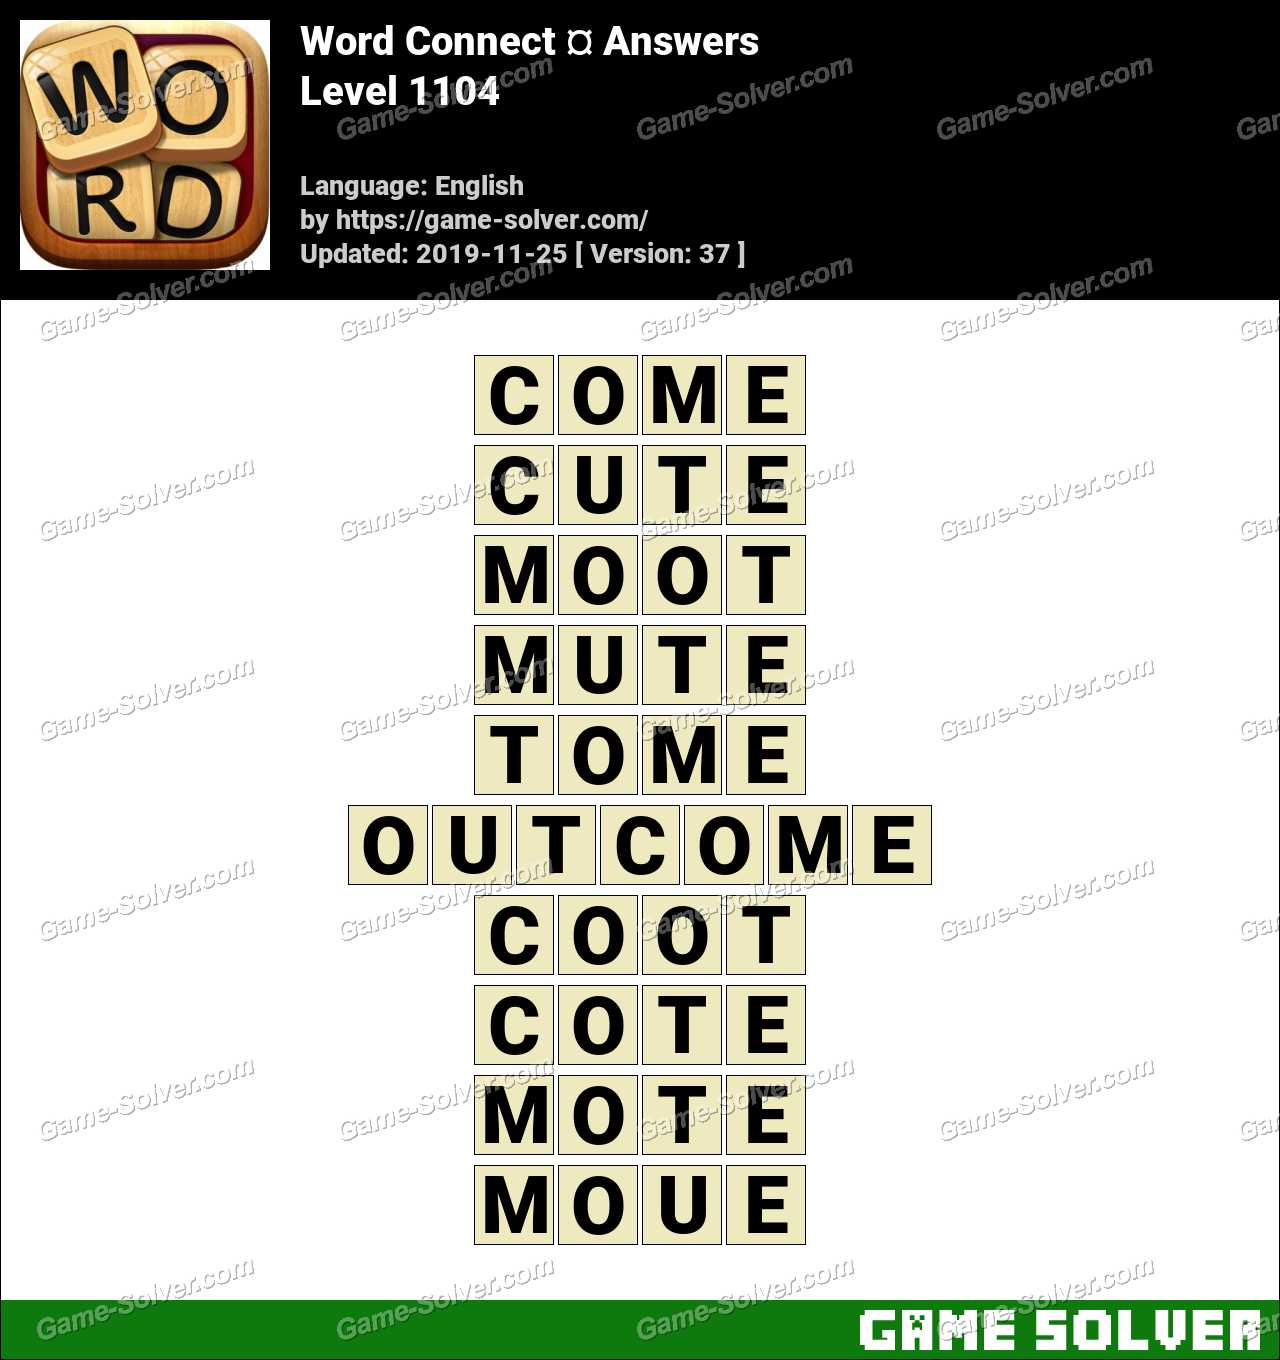 Word Connect Level 1104 Answers